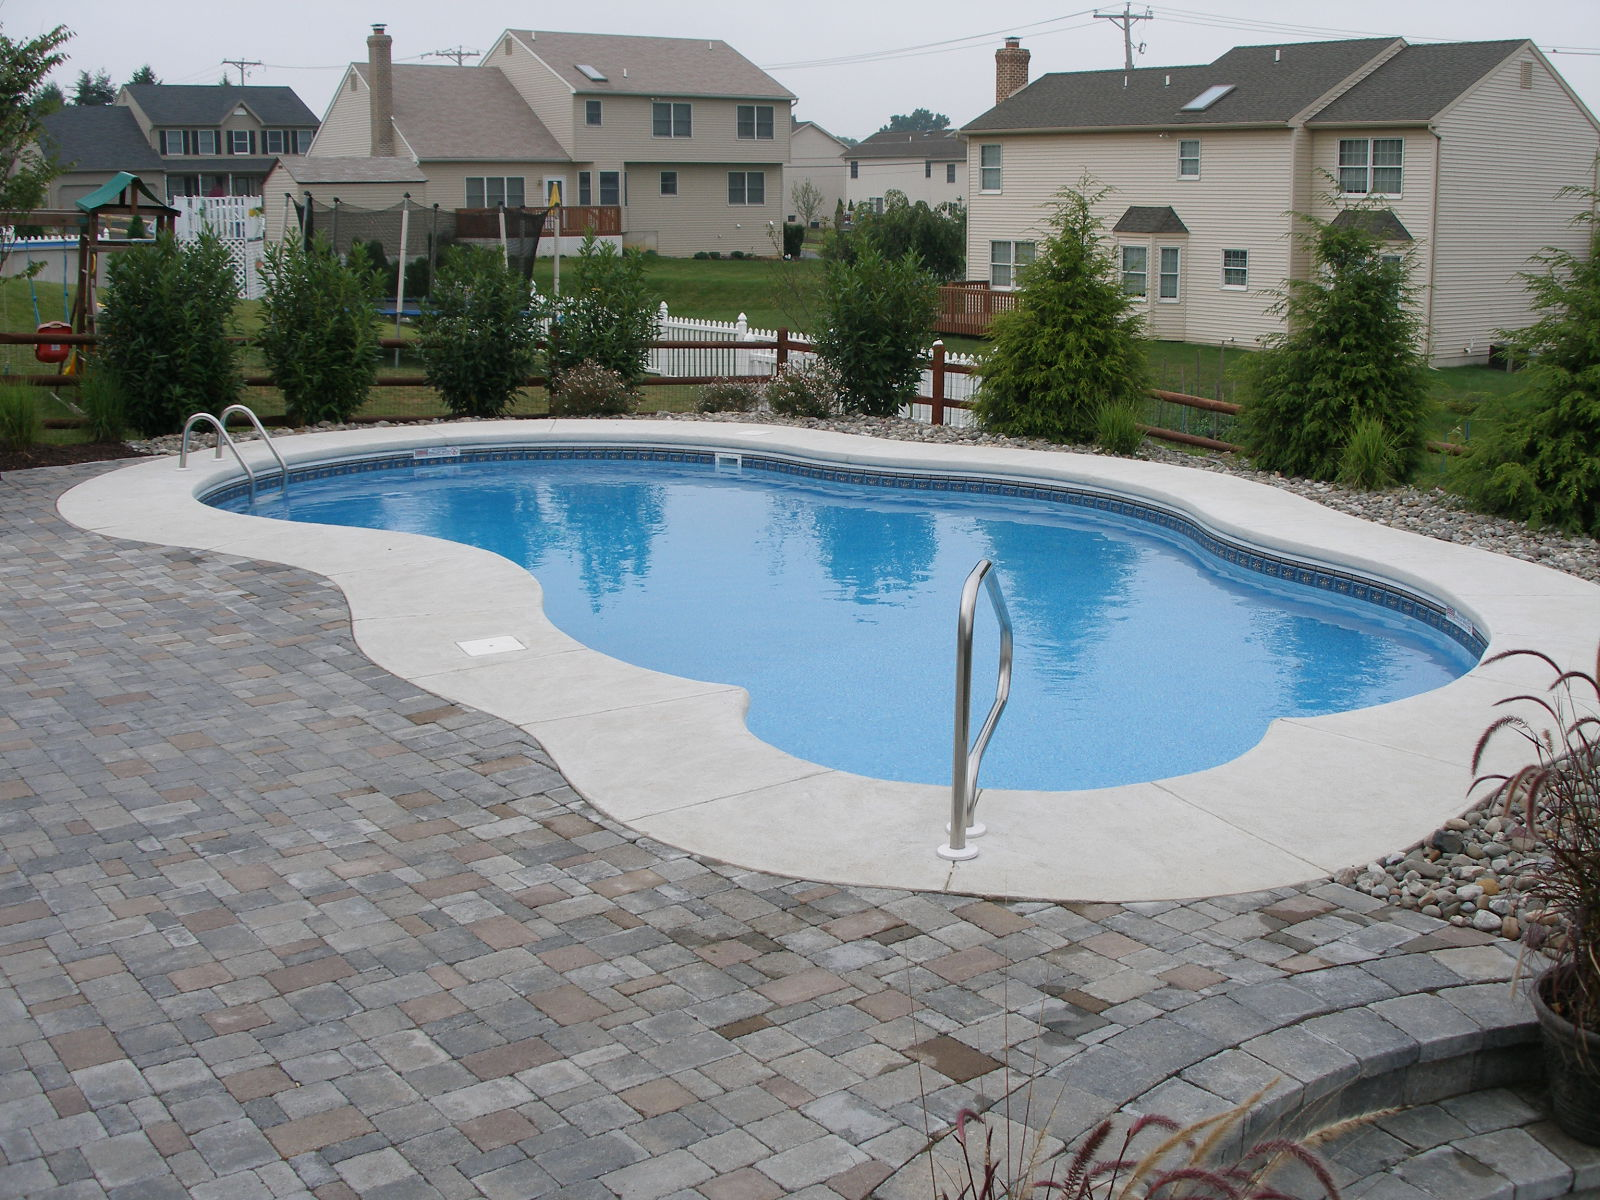 Northeastern pa 39 s premiere pool builder serving the for Northeastern pool